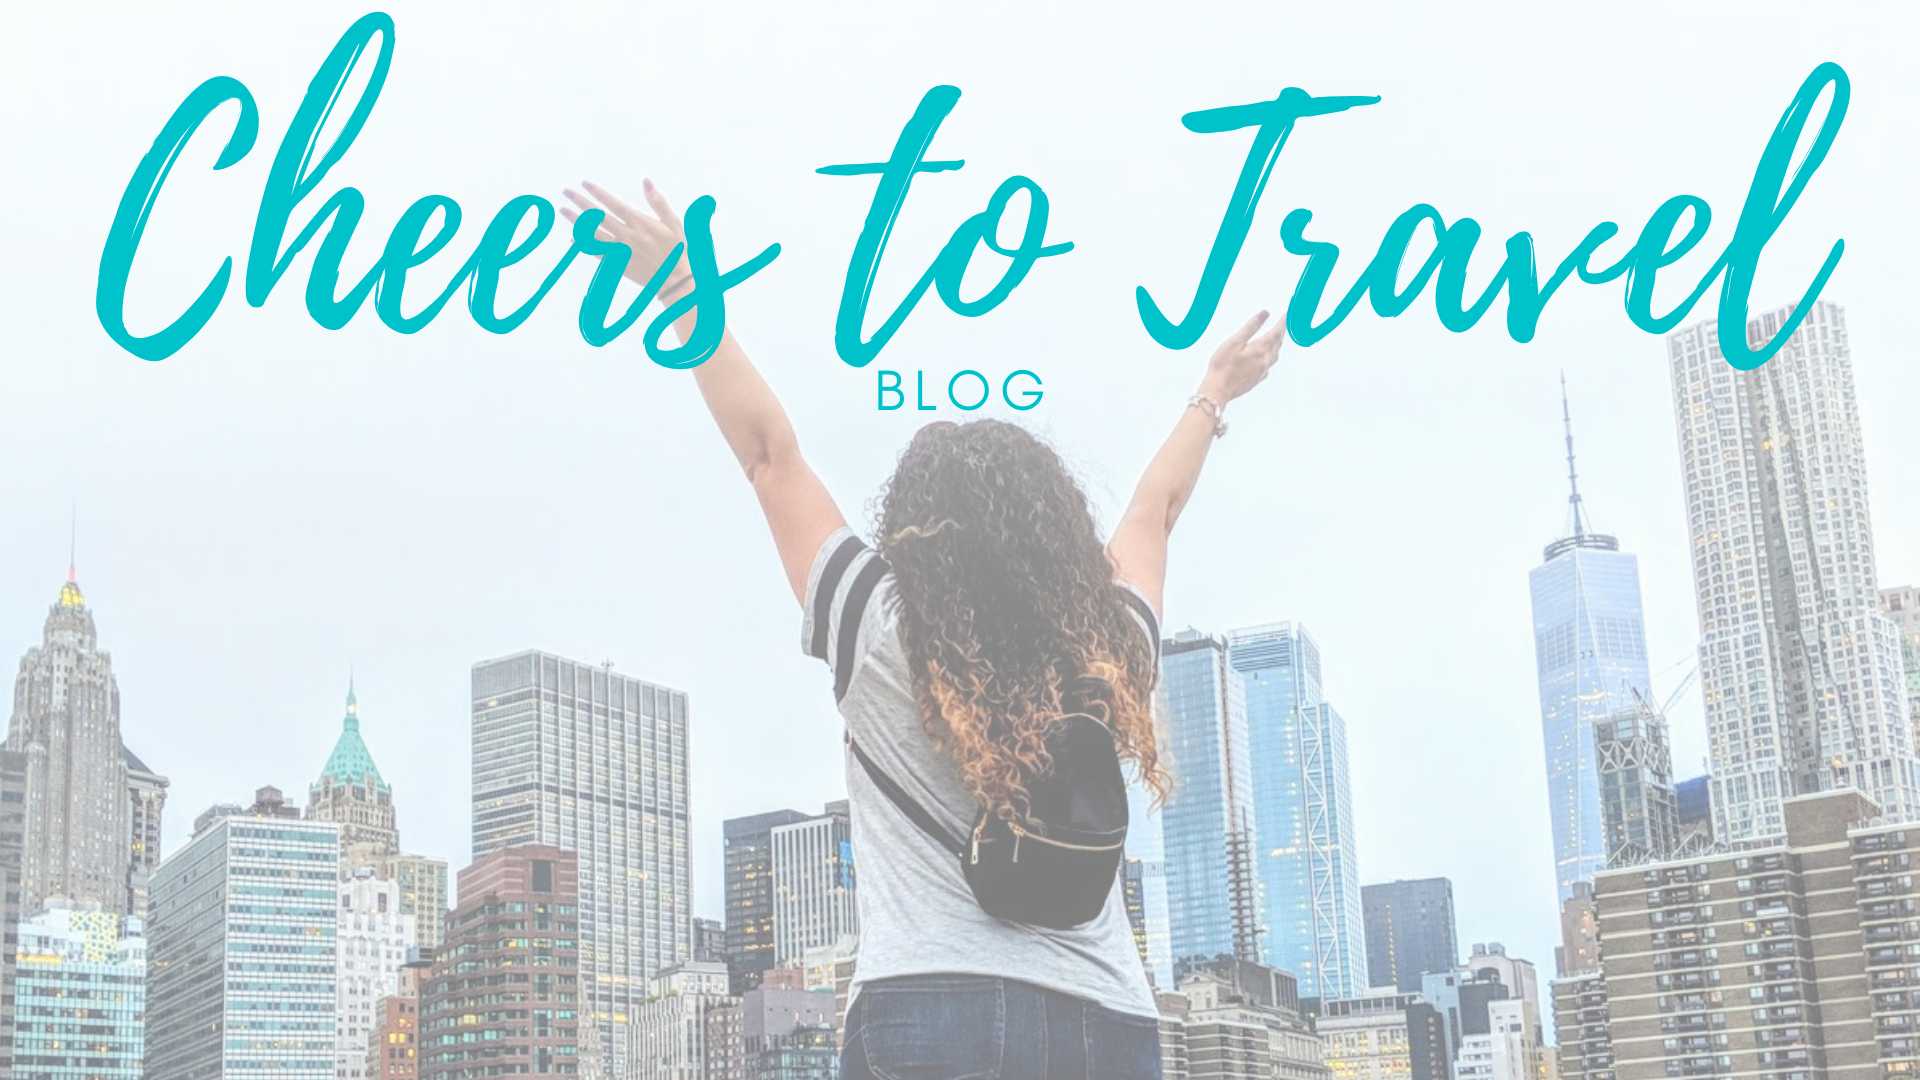 Cheers to Travel Blog